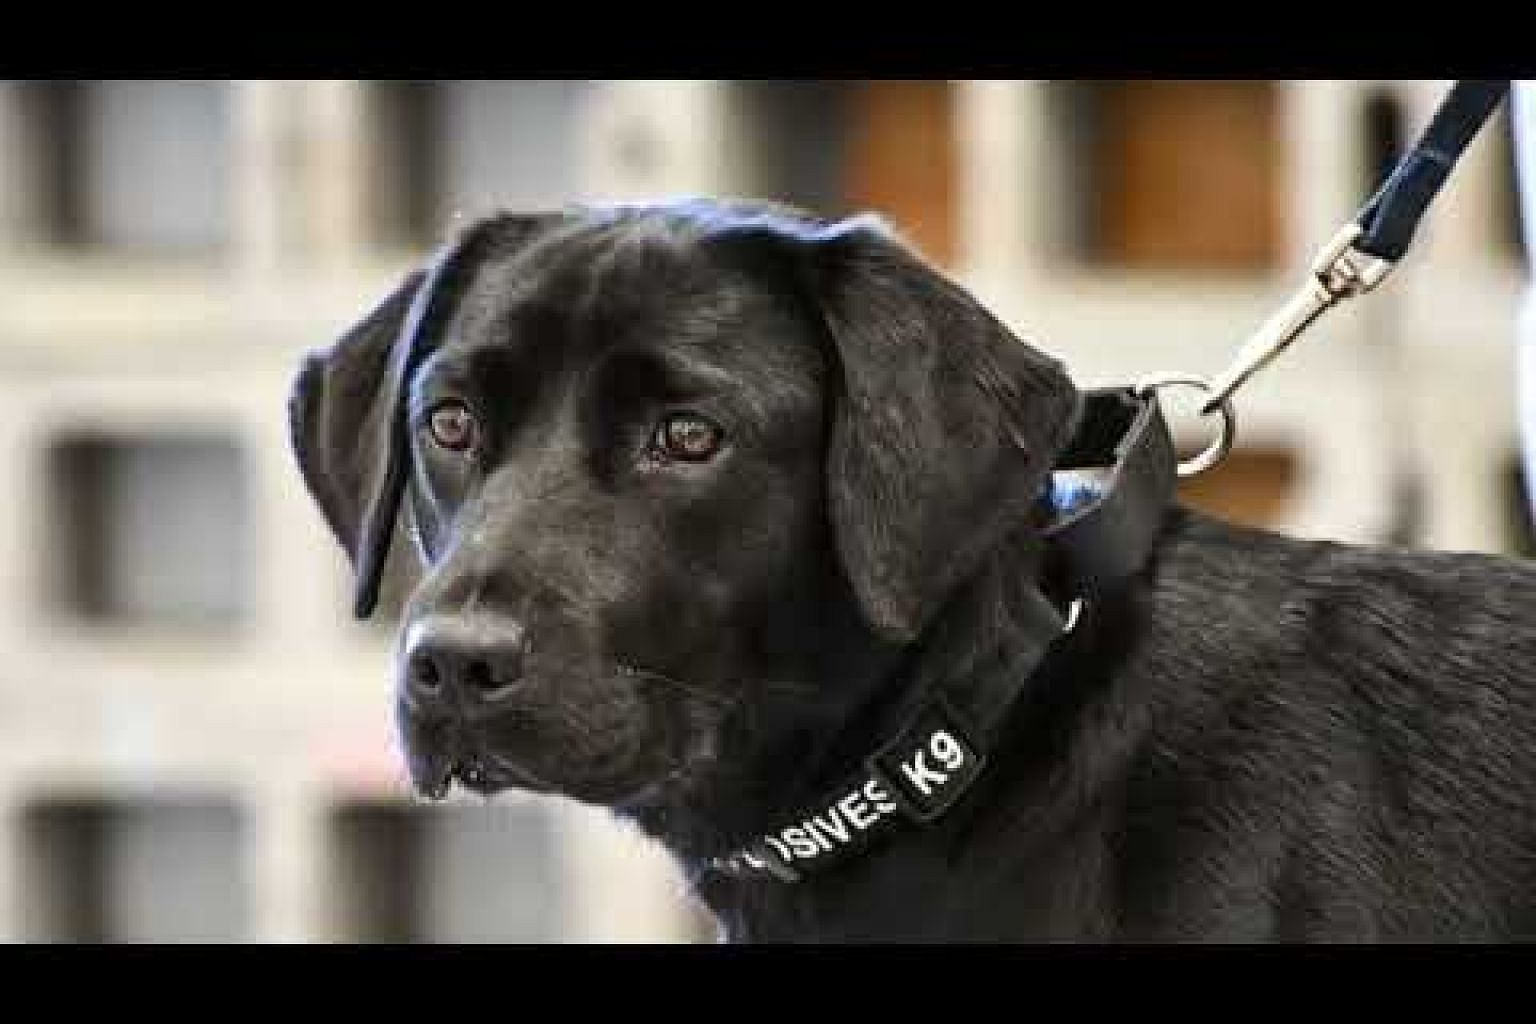 CIA dog trainee quits explosives school in favor of 'sniffing out rabbits and squirrels'